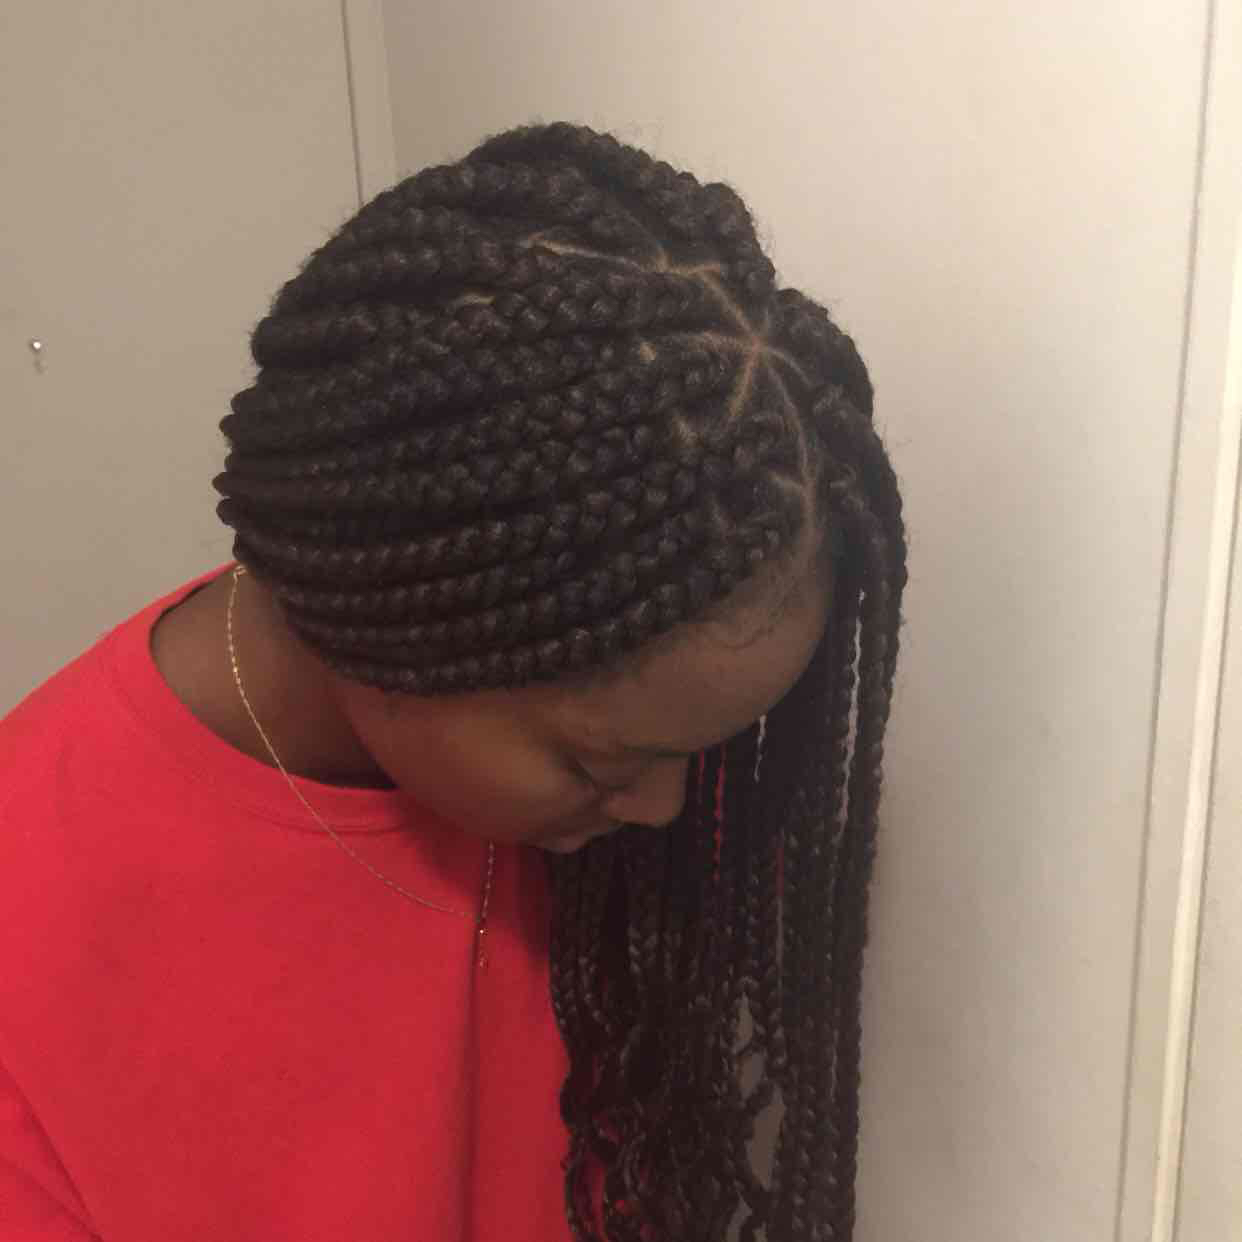 salon de coiffure afro tresse tresses box braids crochet braids vanilles tissages paris 75 77 78 91 92 93 94 95 VTSCCQLQ